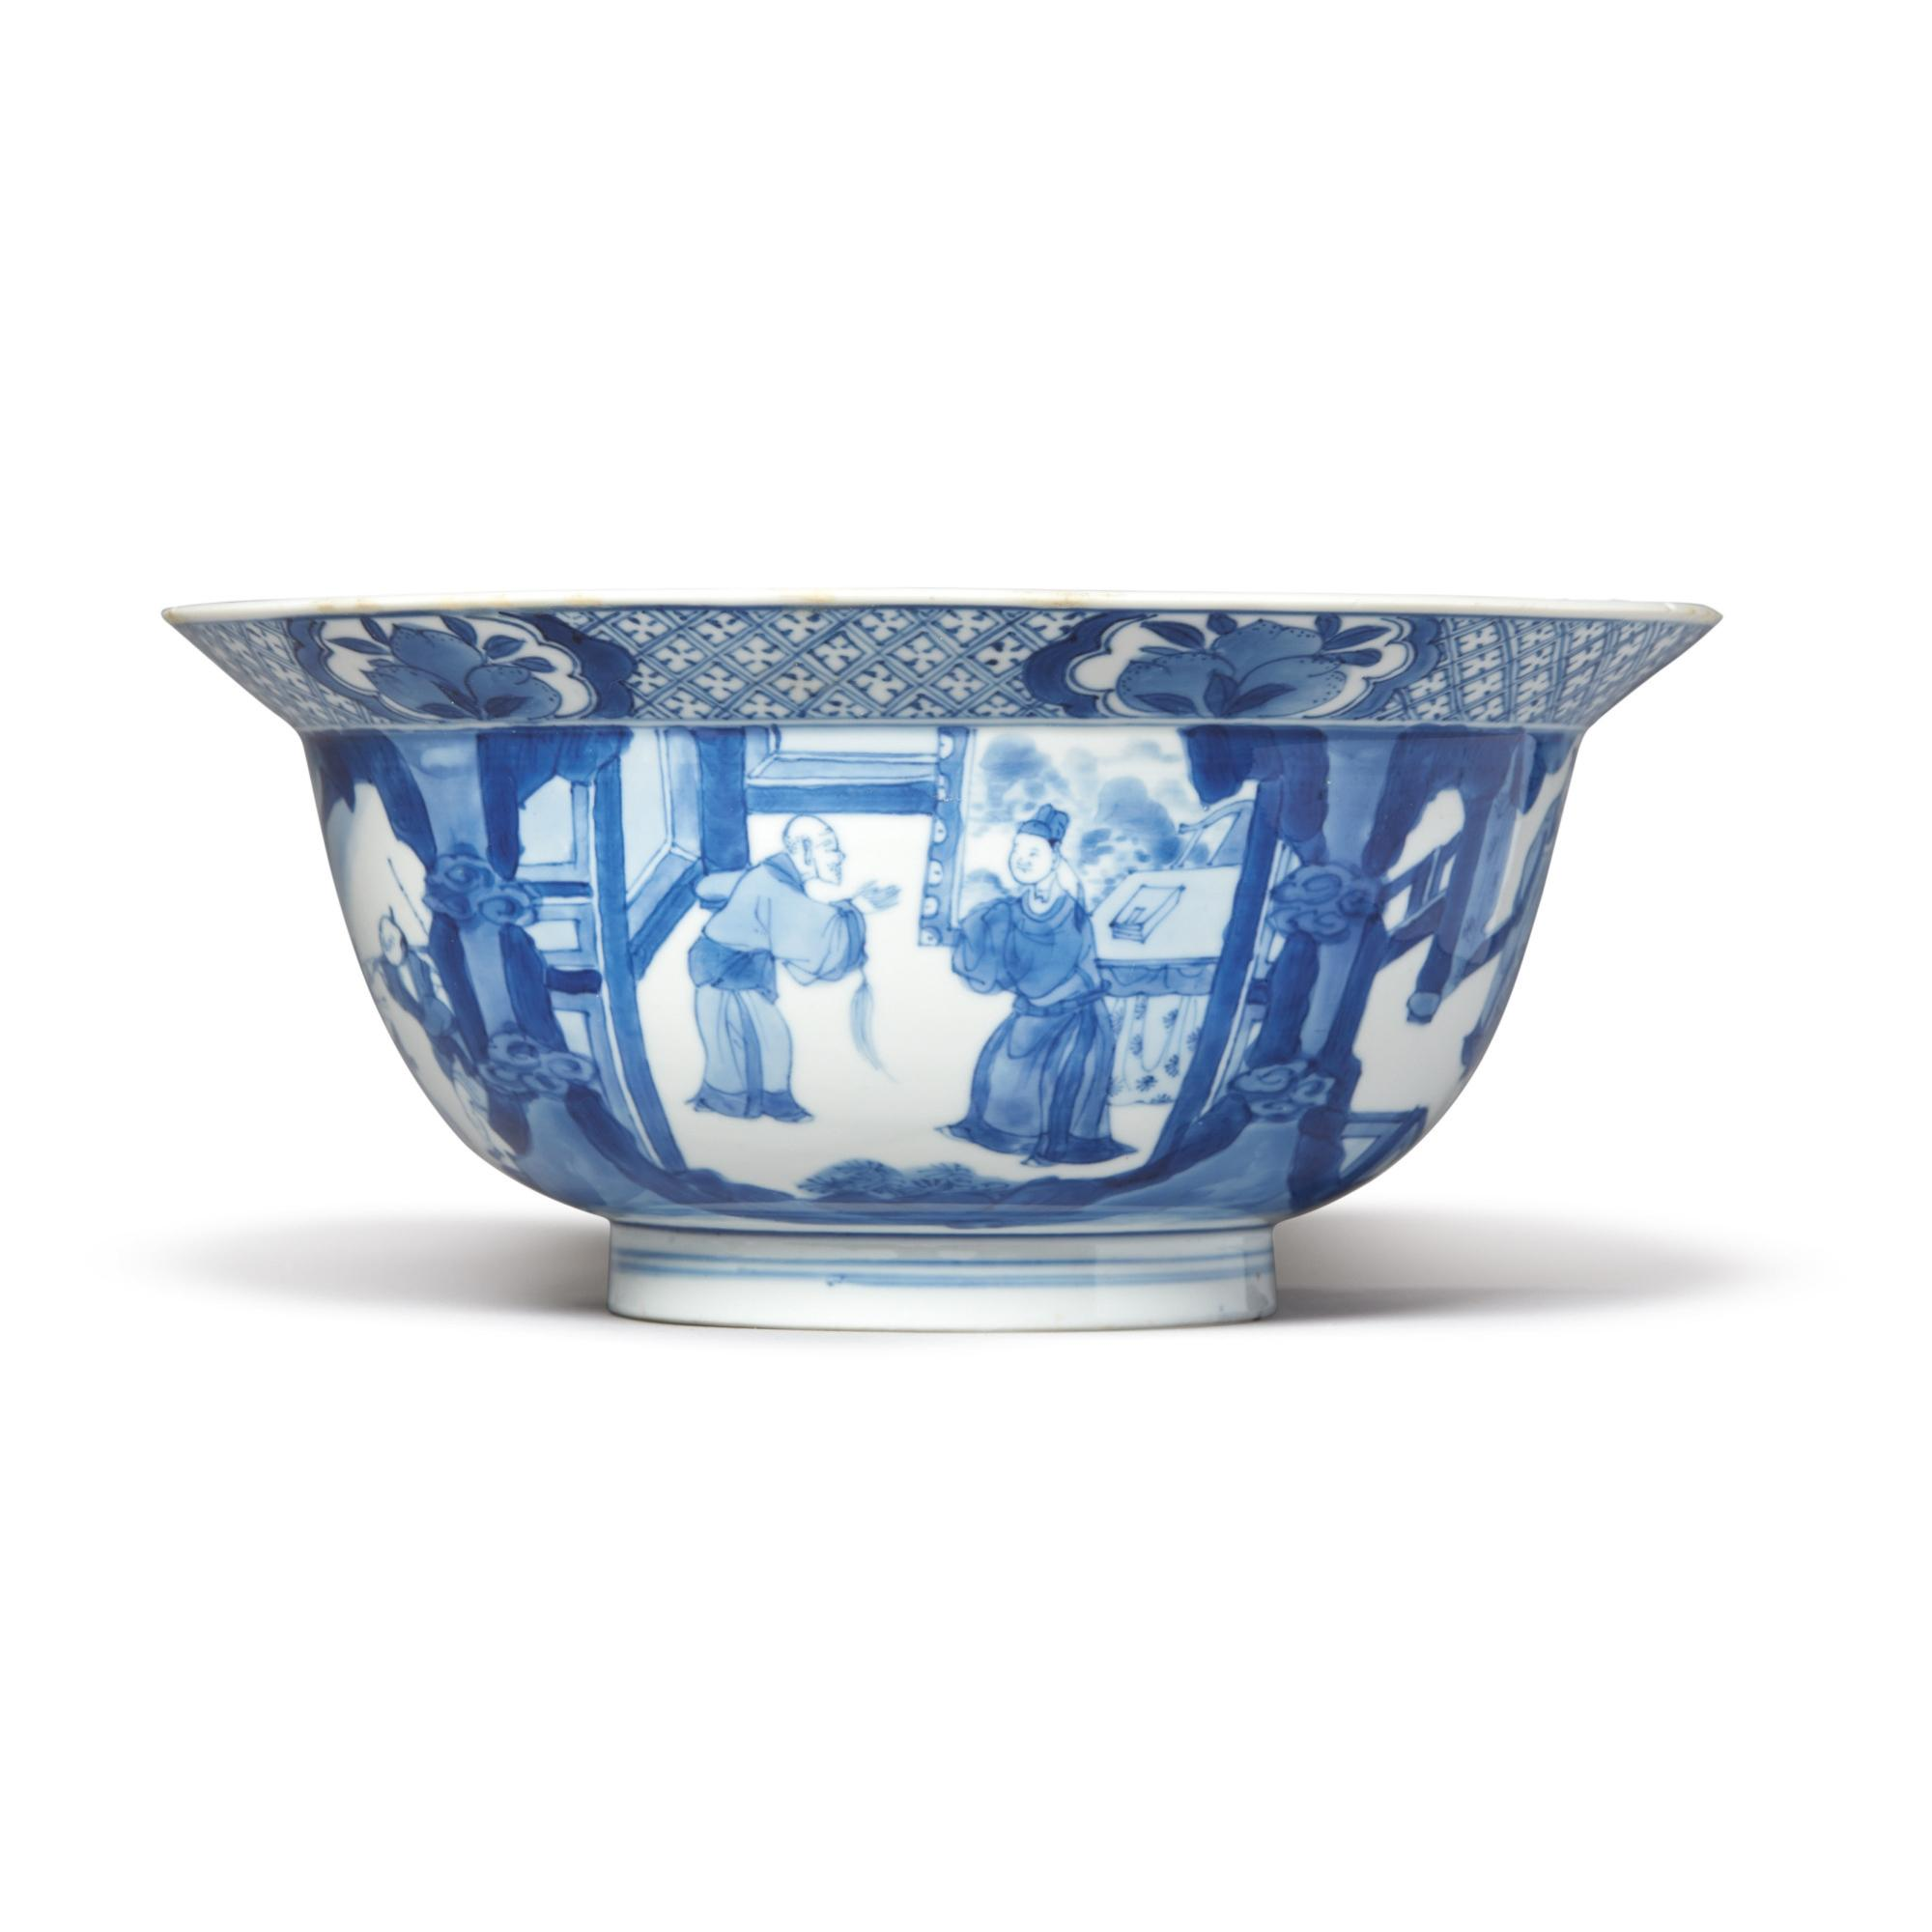 A BLUE AND WHITE 'FIGURAL' BOWL, QING DYNASTY, KANGXI PERIOD